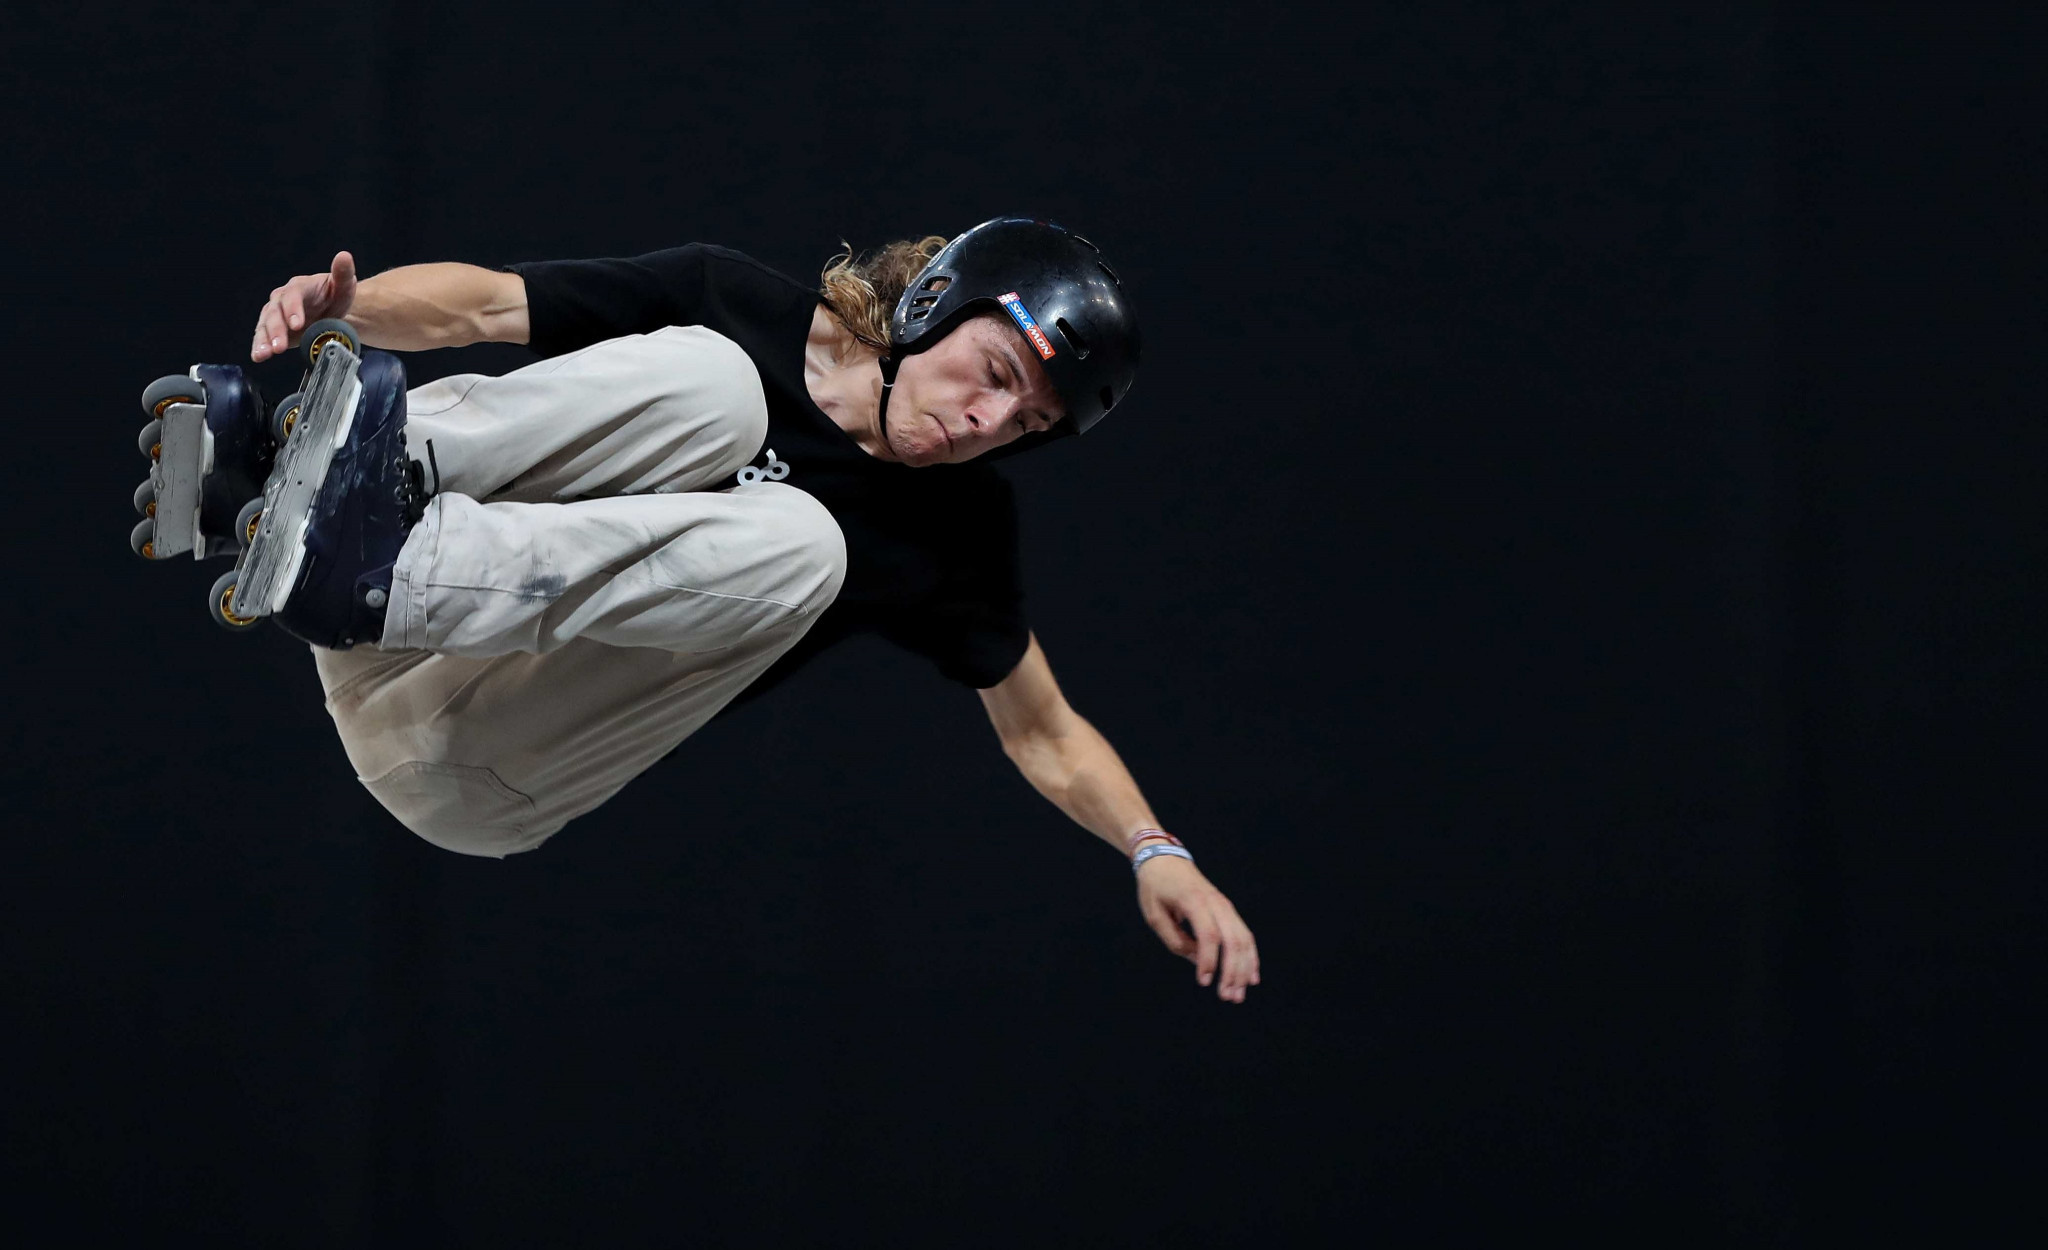 Joe Atkinson topped the standings in the roller freestyle ©M. Casanova/WRG